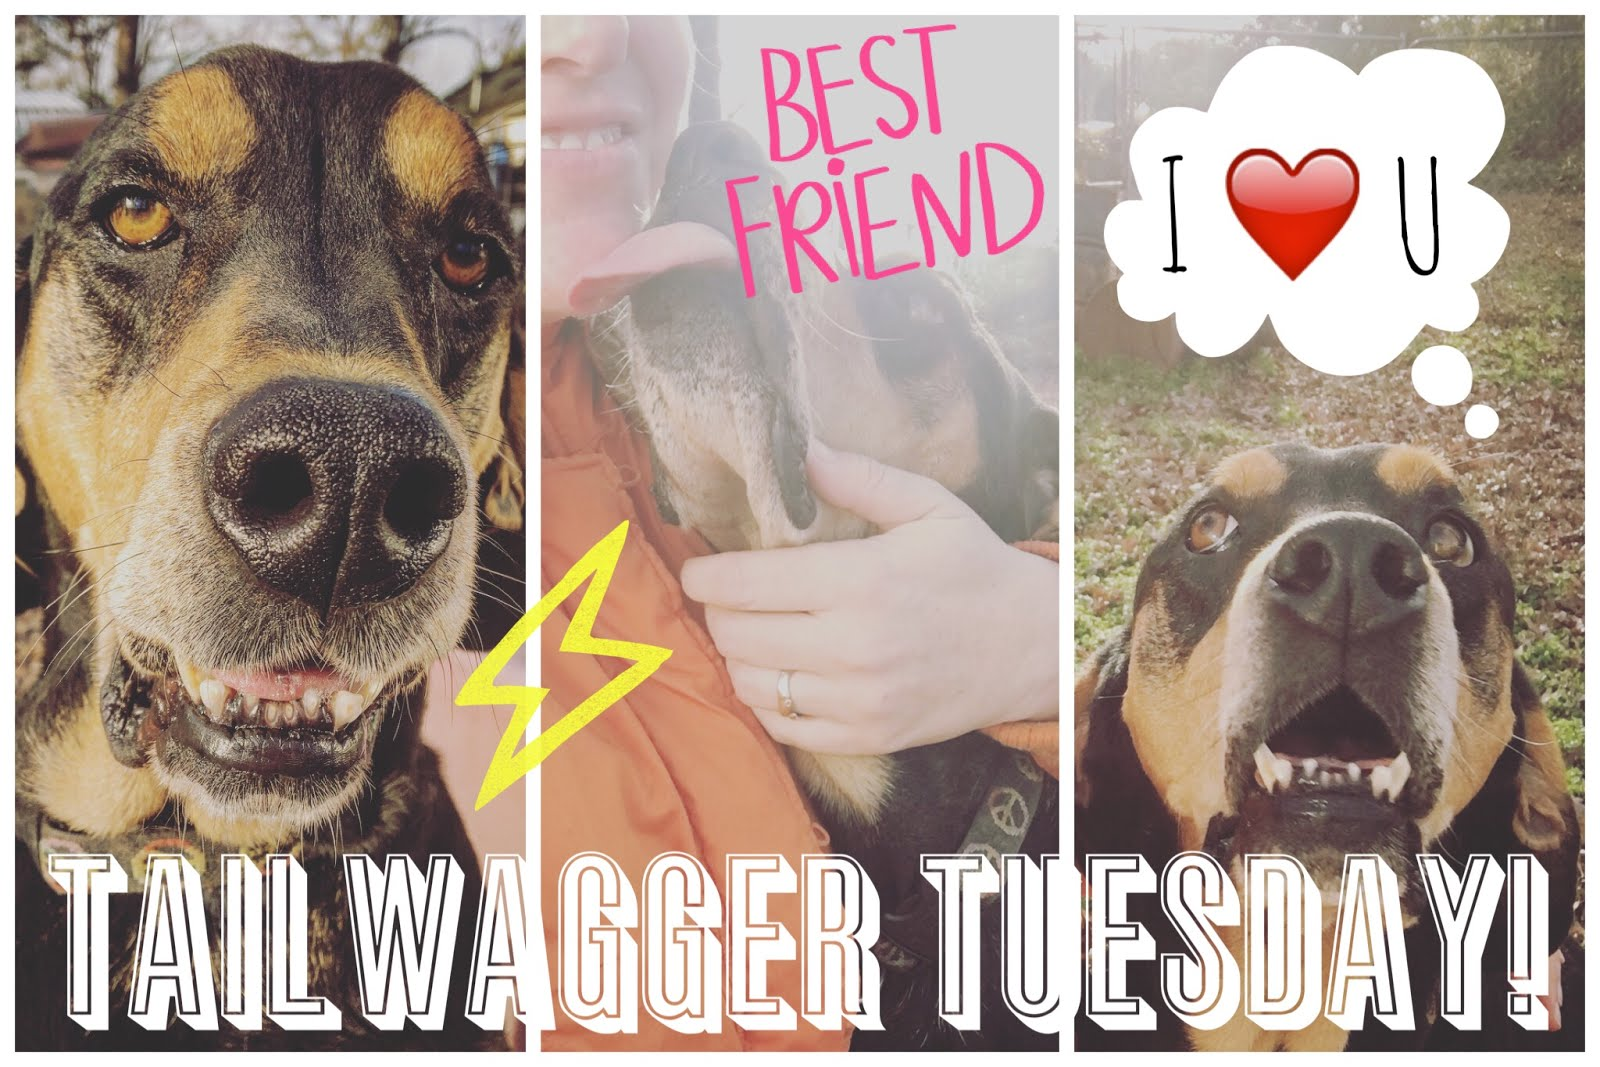 TAILWAGGER TUESDAY